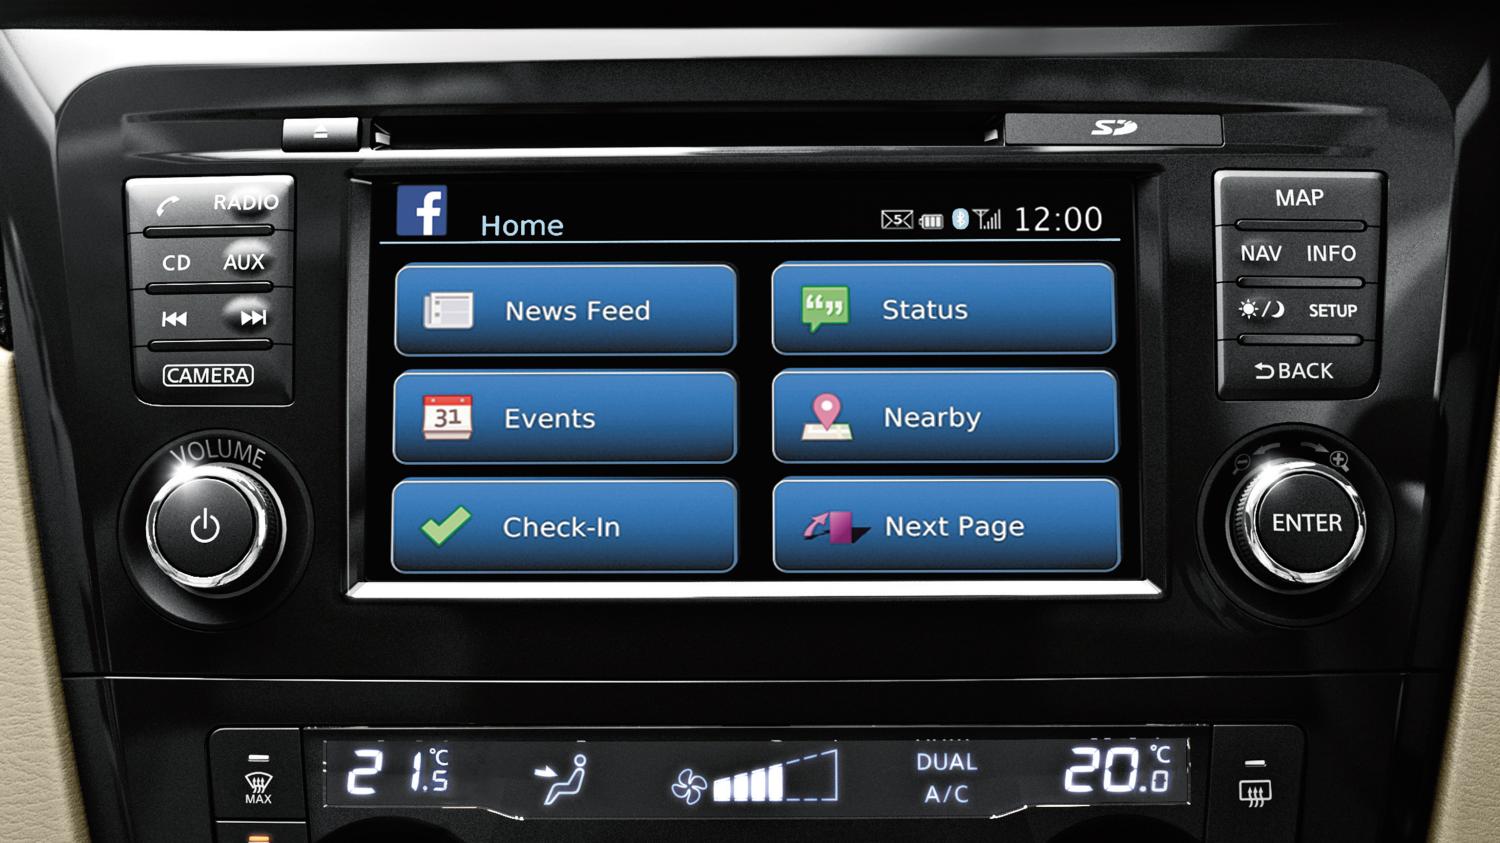 7 seater & 4x4 car - Bluetooth audio display | Nissan X-Trail